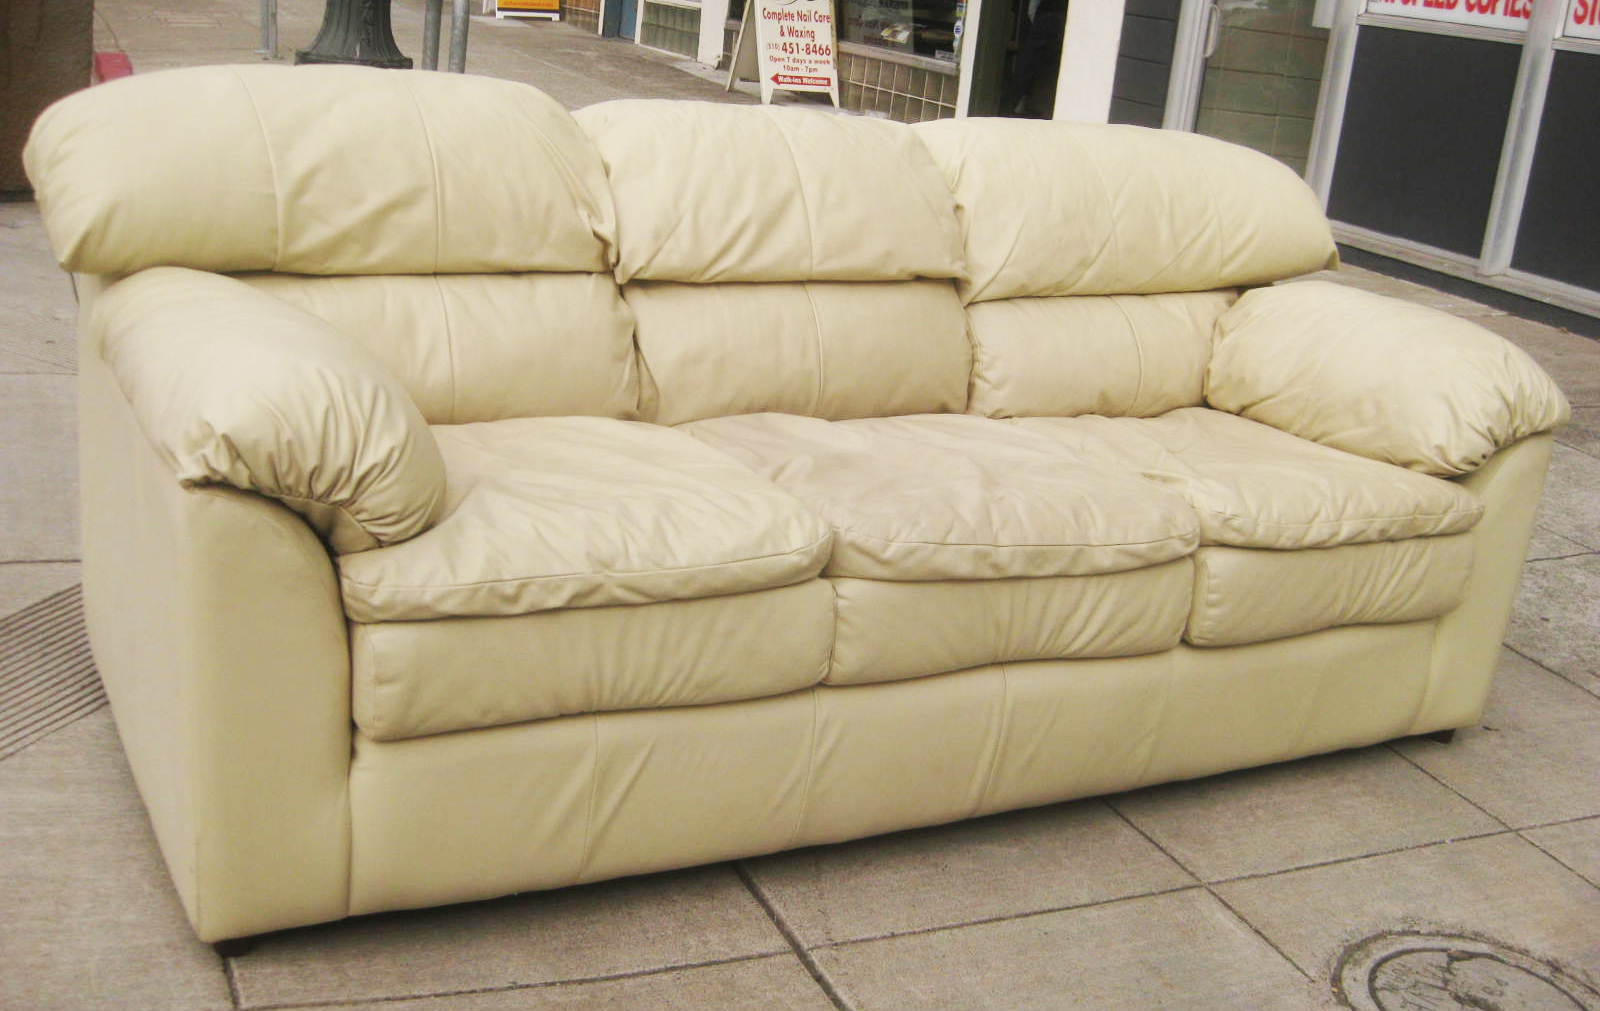 Incroyable SOLD   Beige Leather Sofa   $125